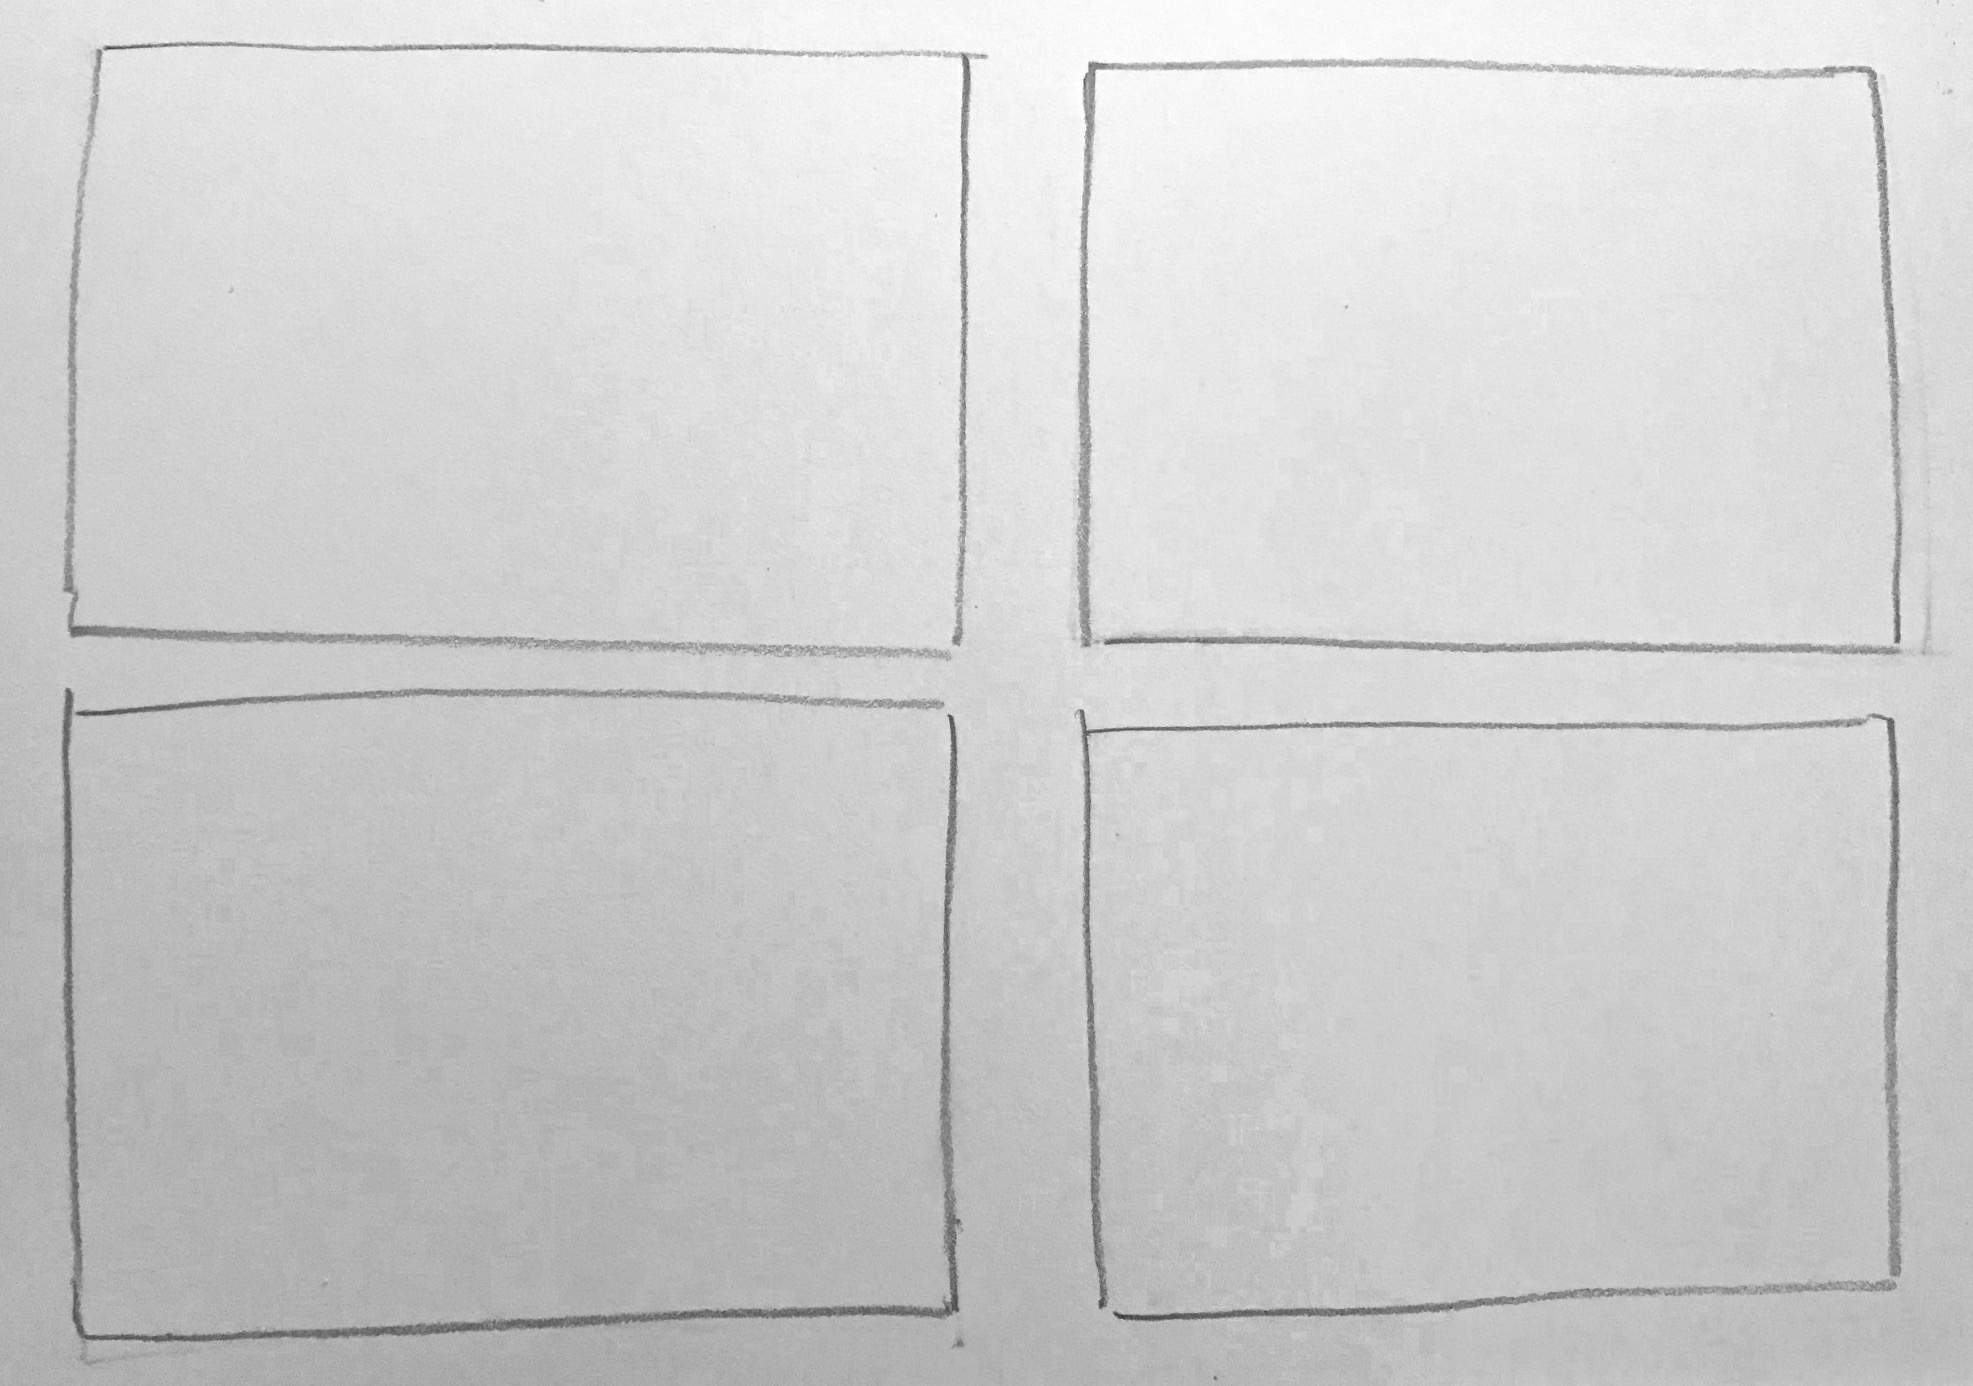 Draw rectangles - Start your studies (or thumbnail sketches) by drawing four rectangles, filling up your page.